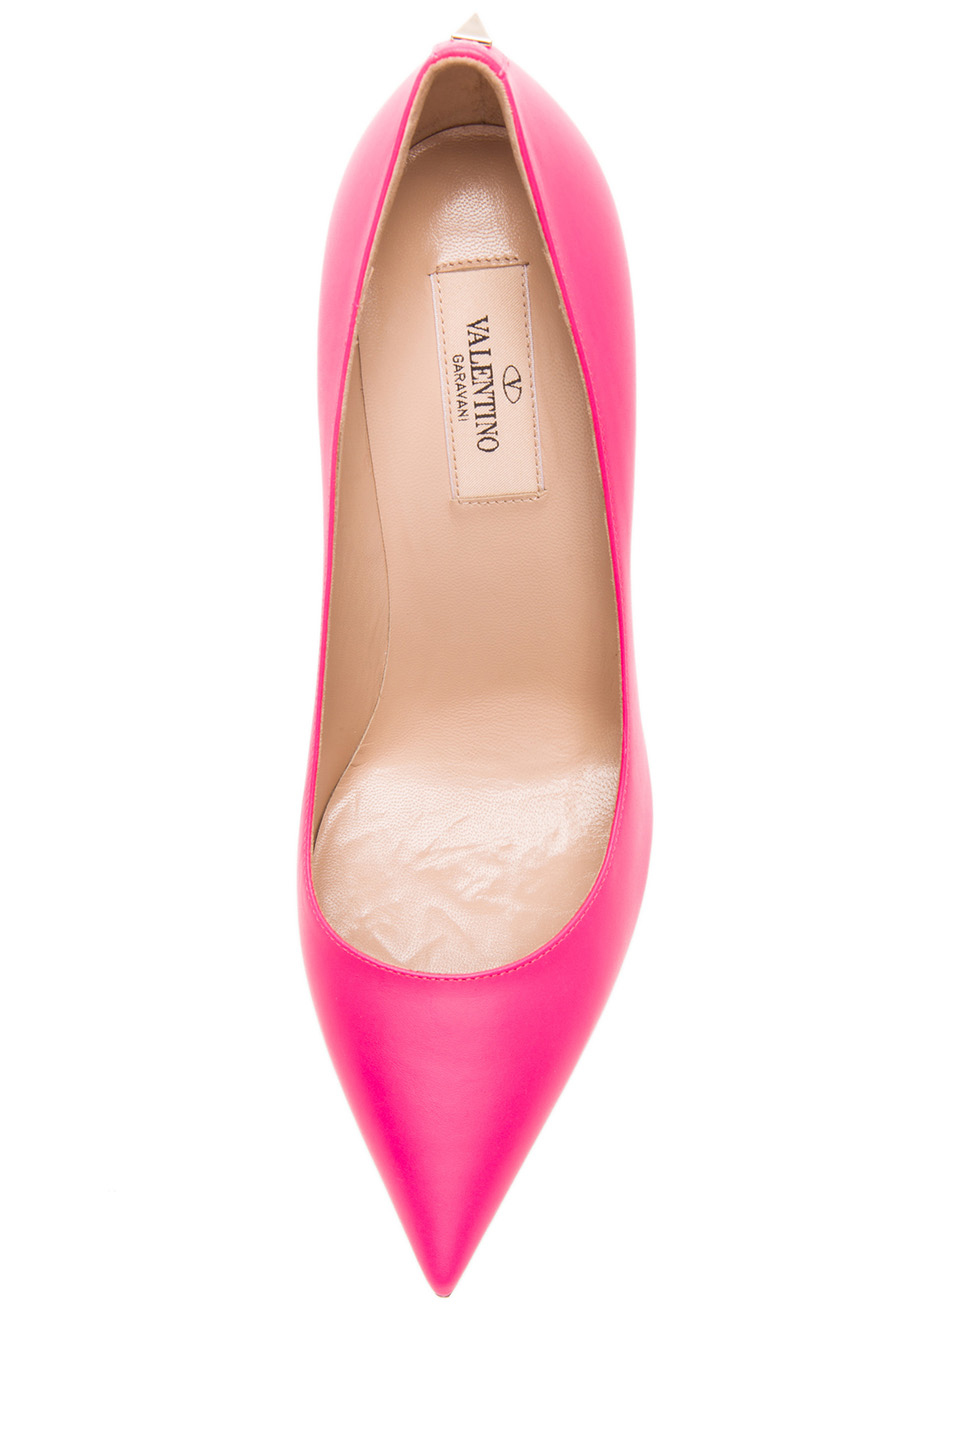 Valentino|New Plain Leather Pumps T.100 in Fluo Pink